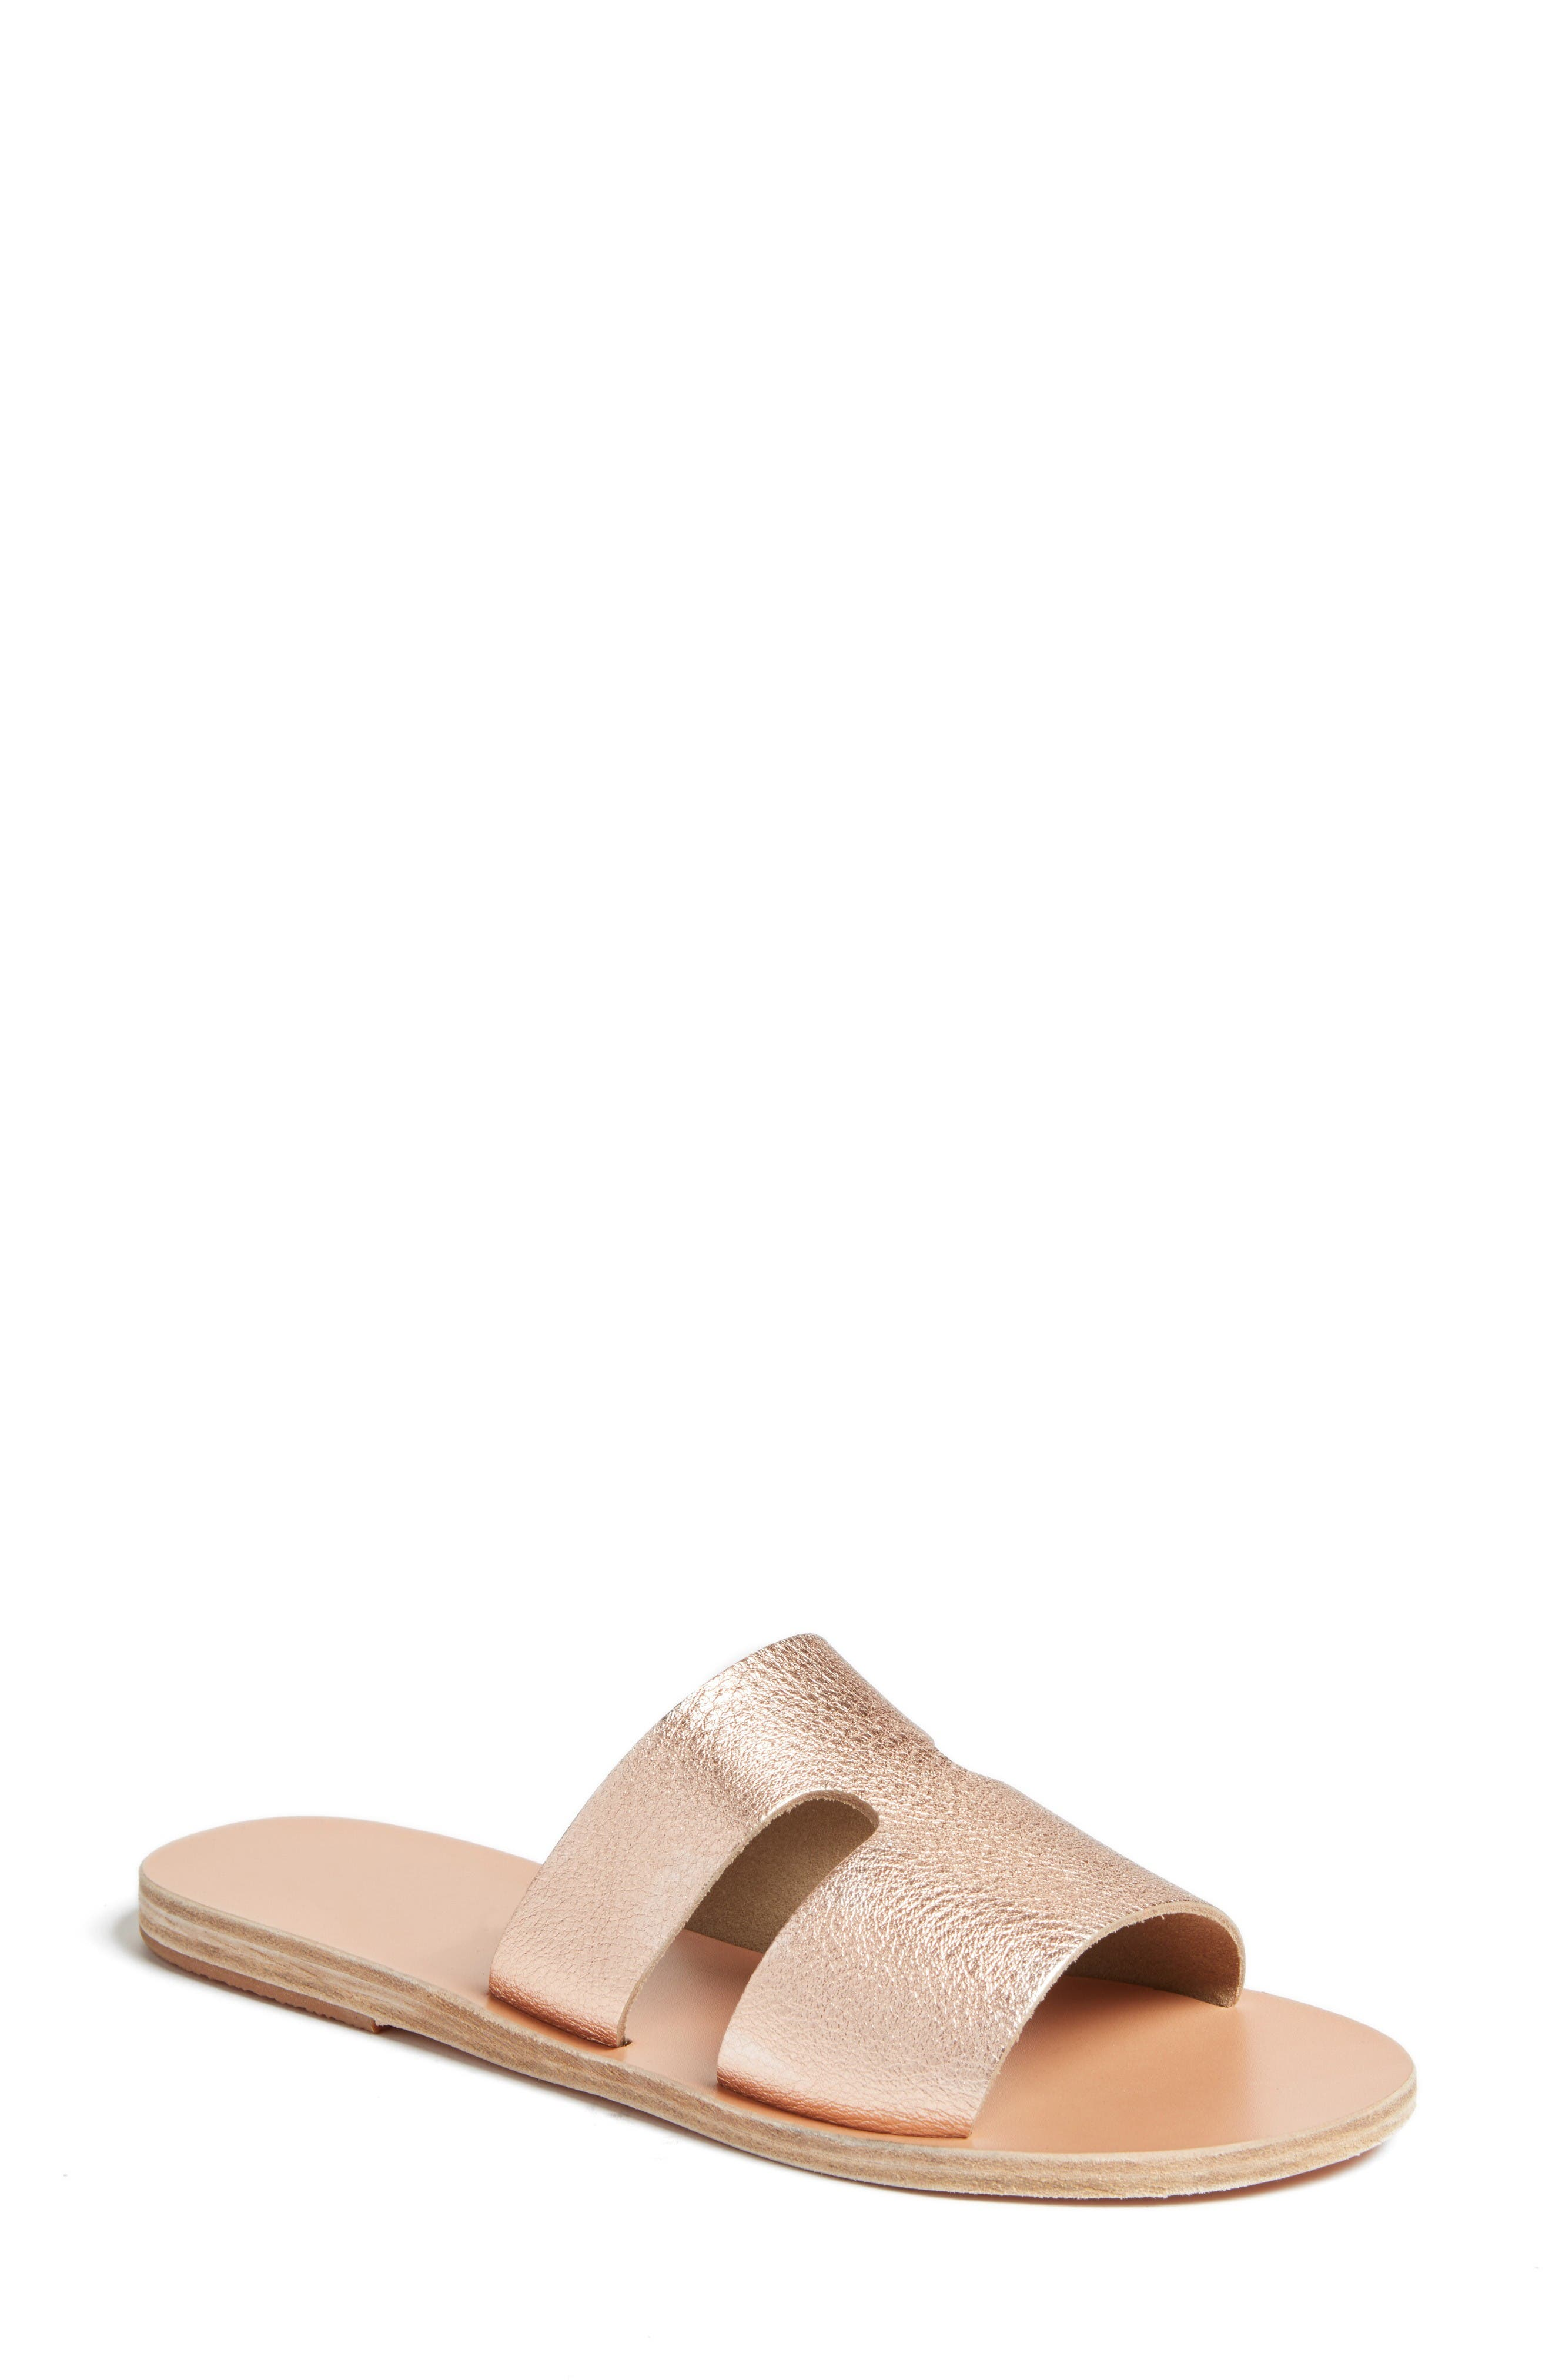 All Women's Ancient Greek Sandals Shoes | Nordstrom